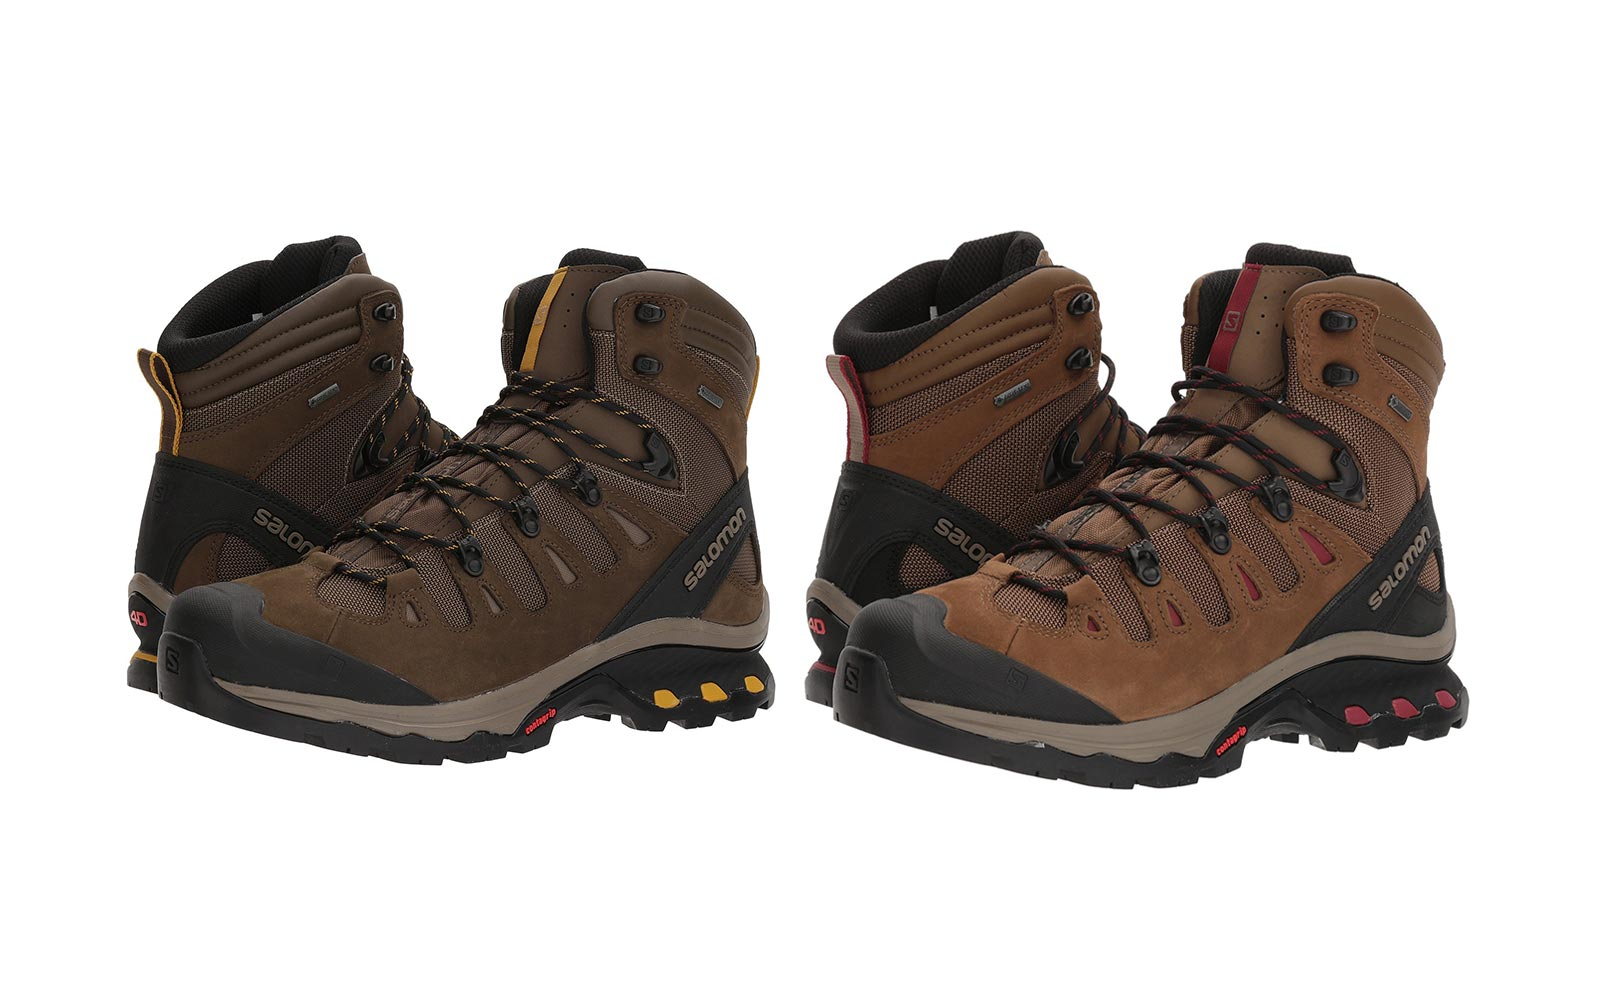 c1ca4213f77 The Best Waterproof Hiking Boots for Men and Women